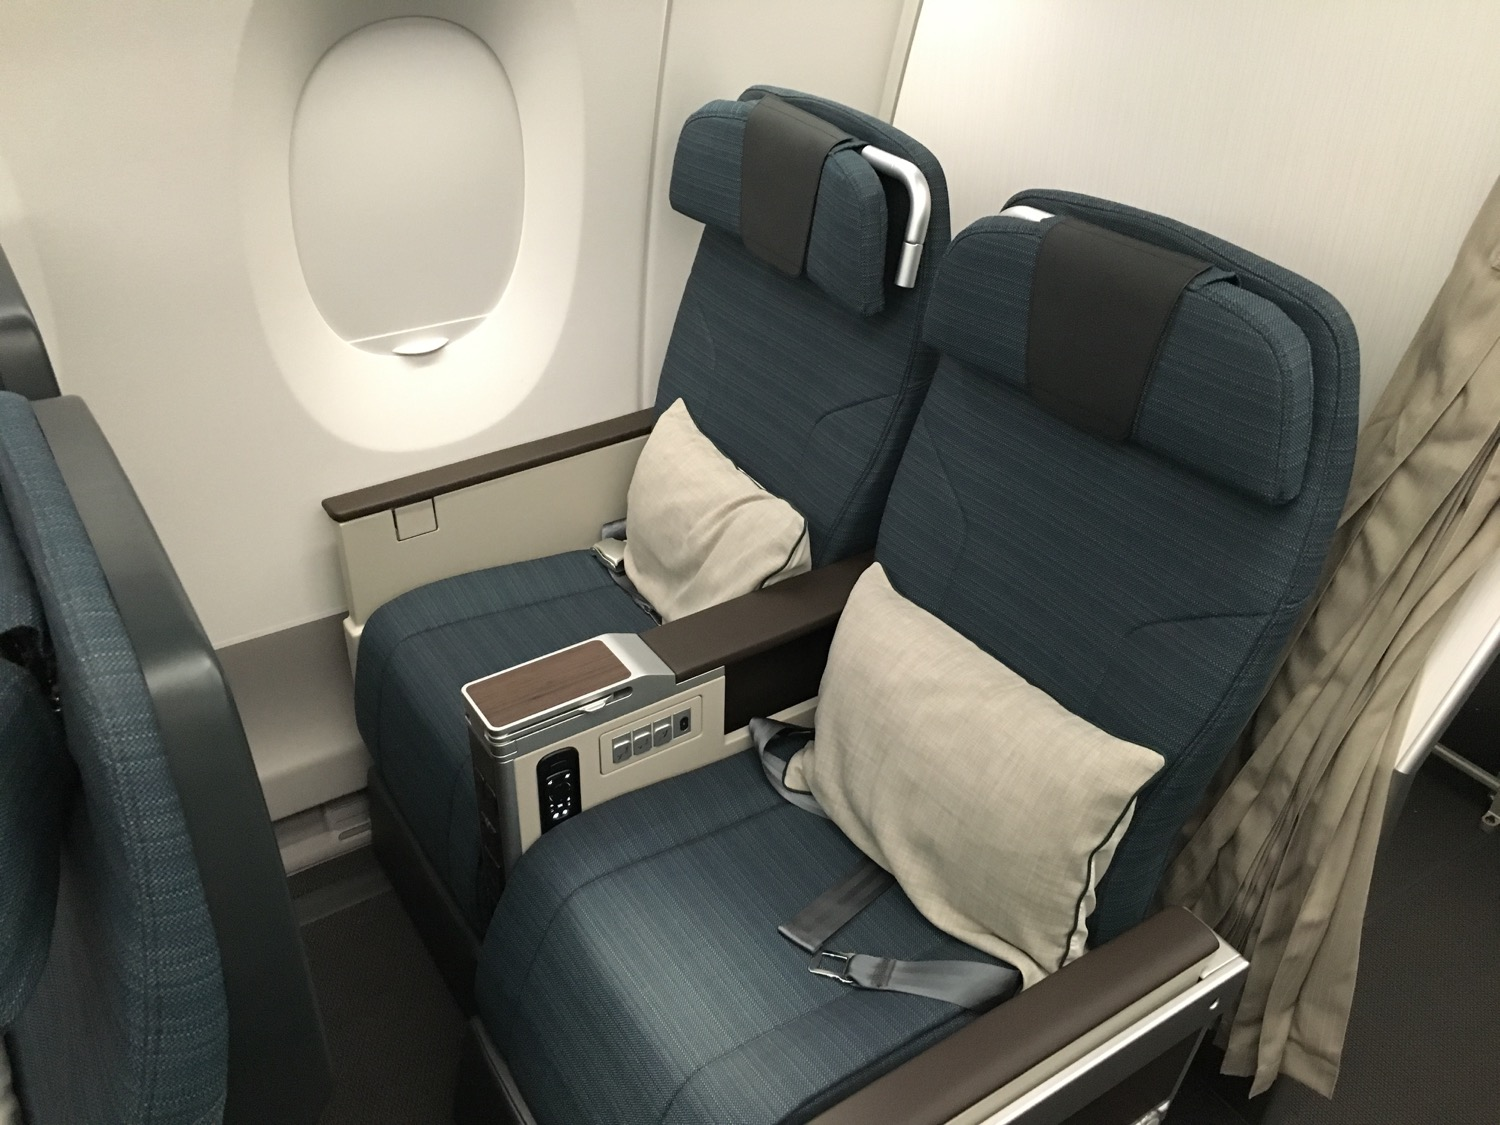 http://thedesignair.files.wordpress.com/2016/05/cathay-a350_-220.jpg